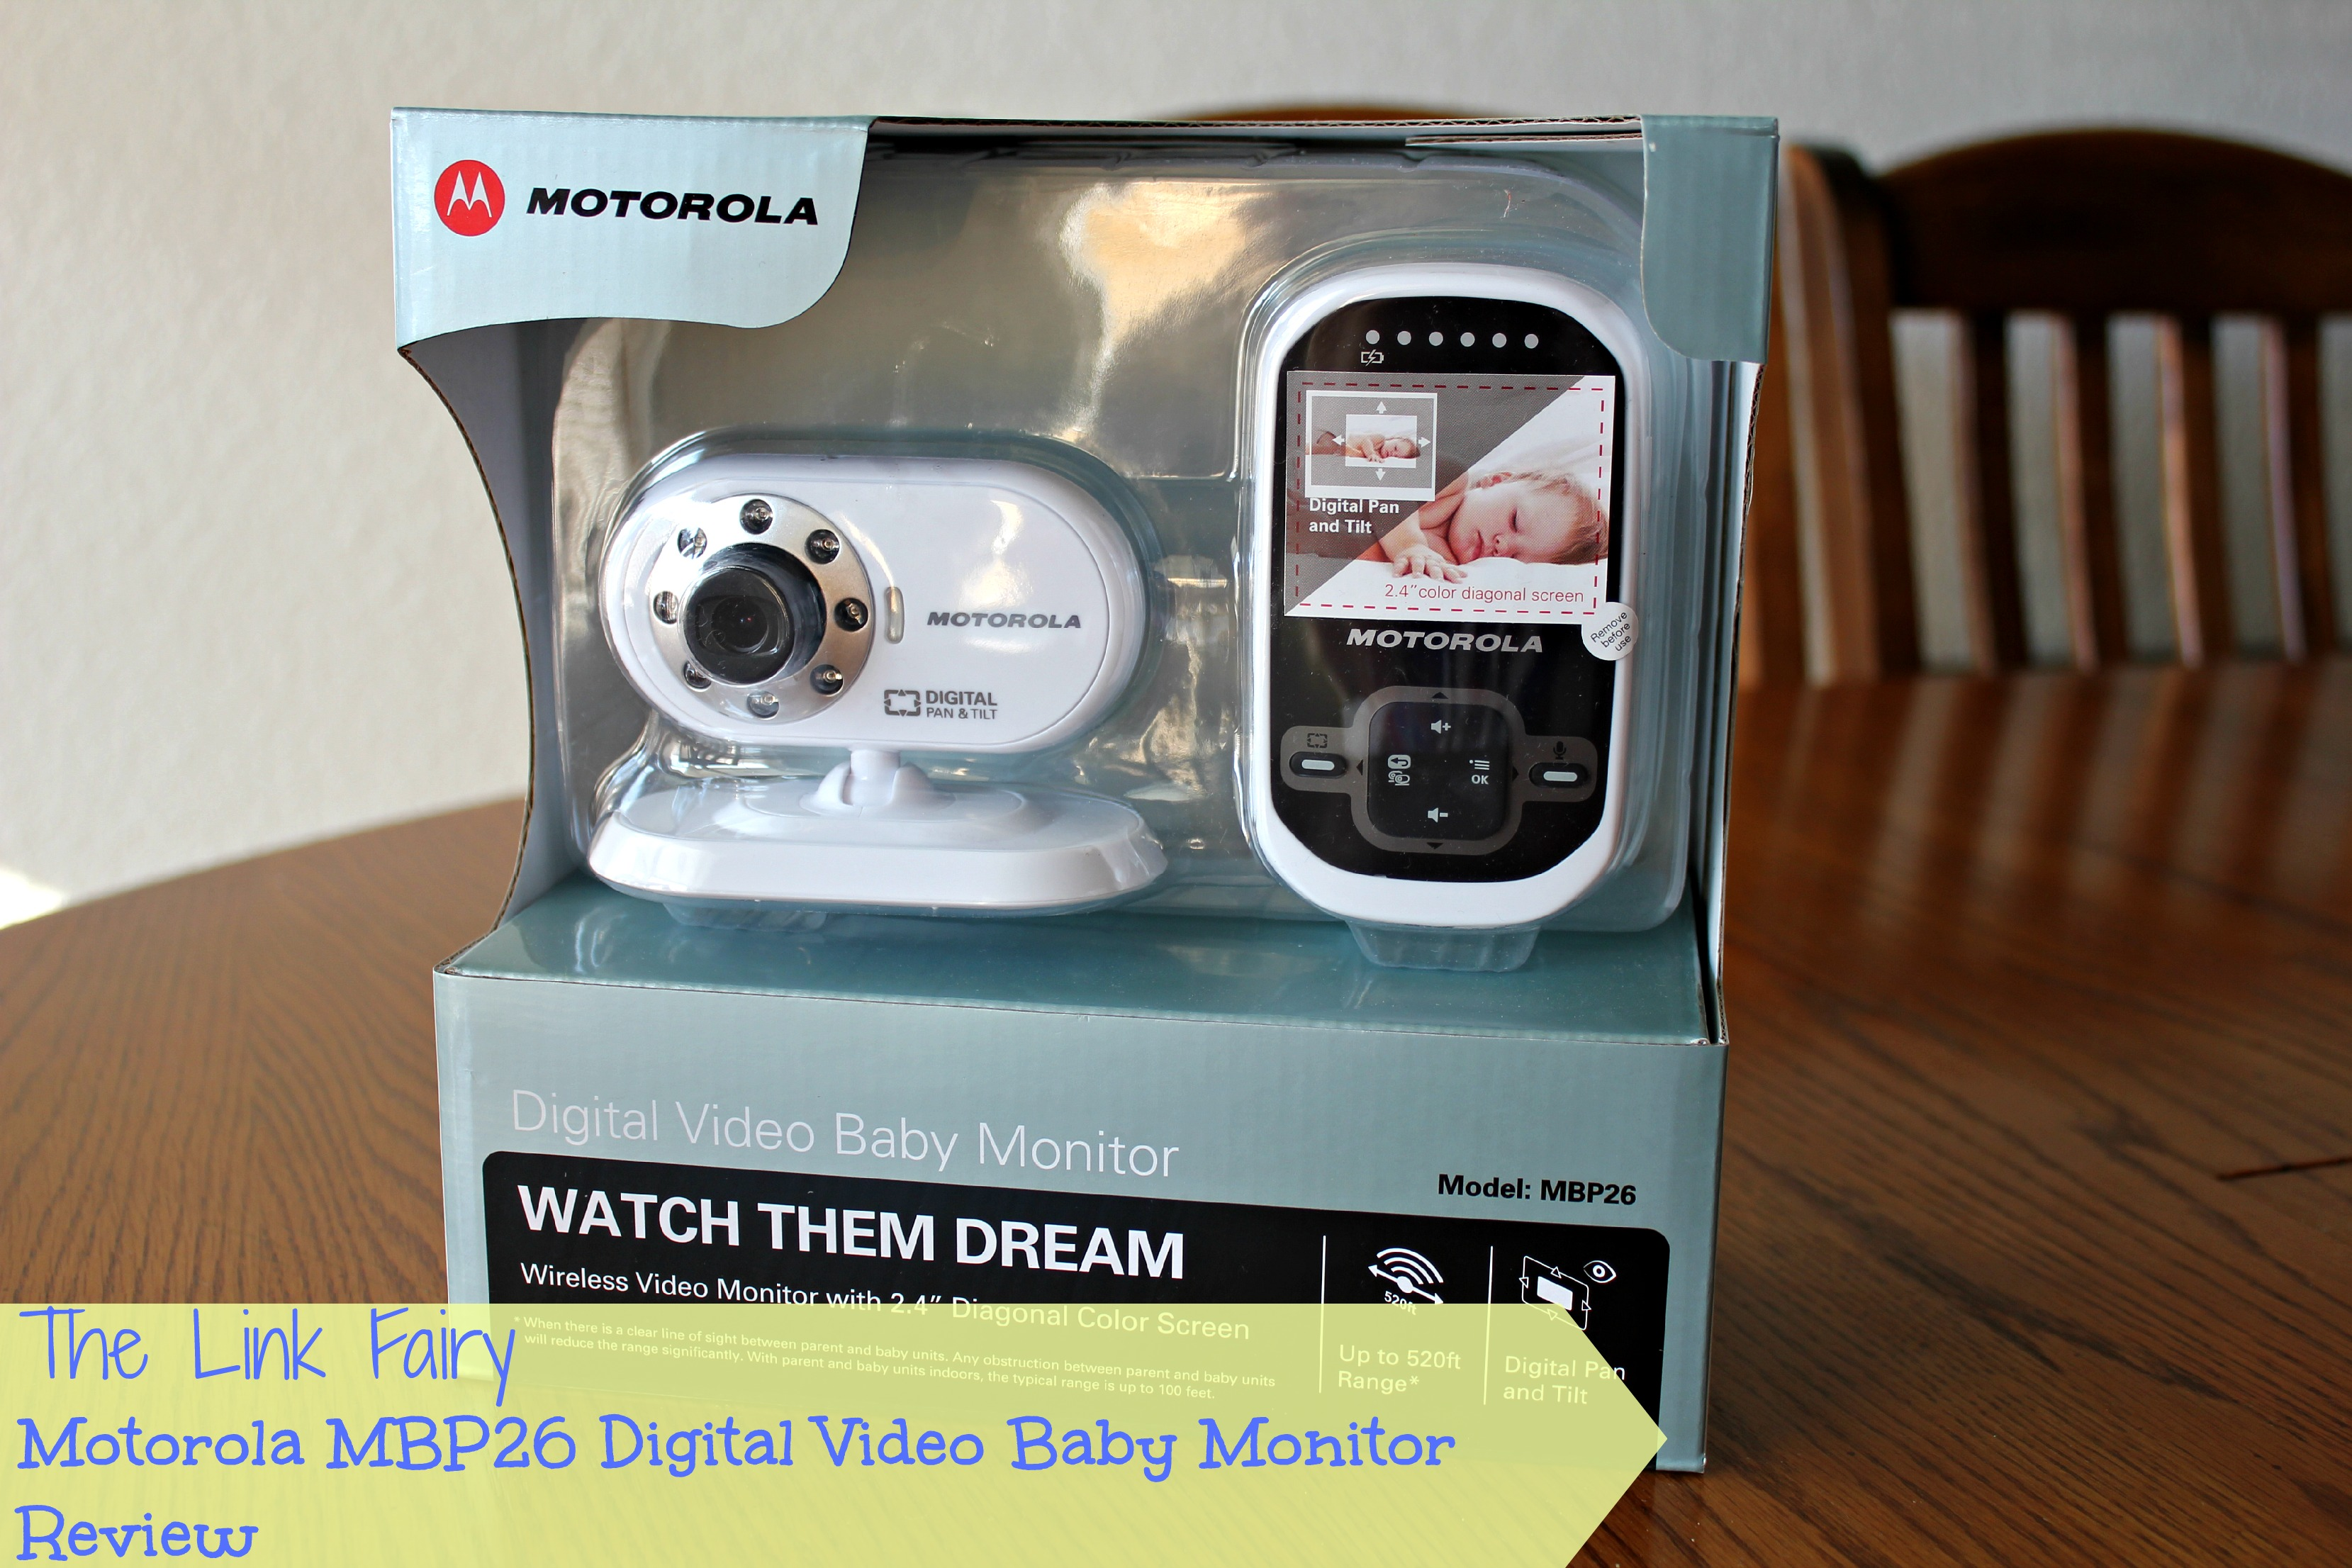 motorola mbp26 digitial video baby monitor review. Black Bedroom Furniture Sets. Home Design Ideas